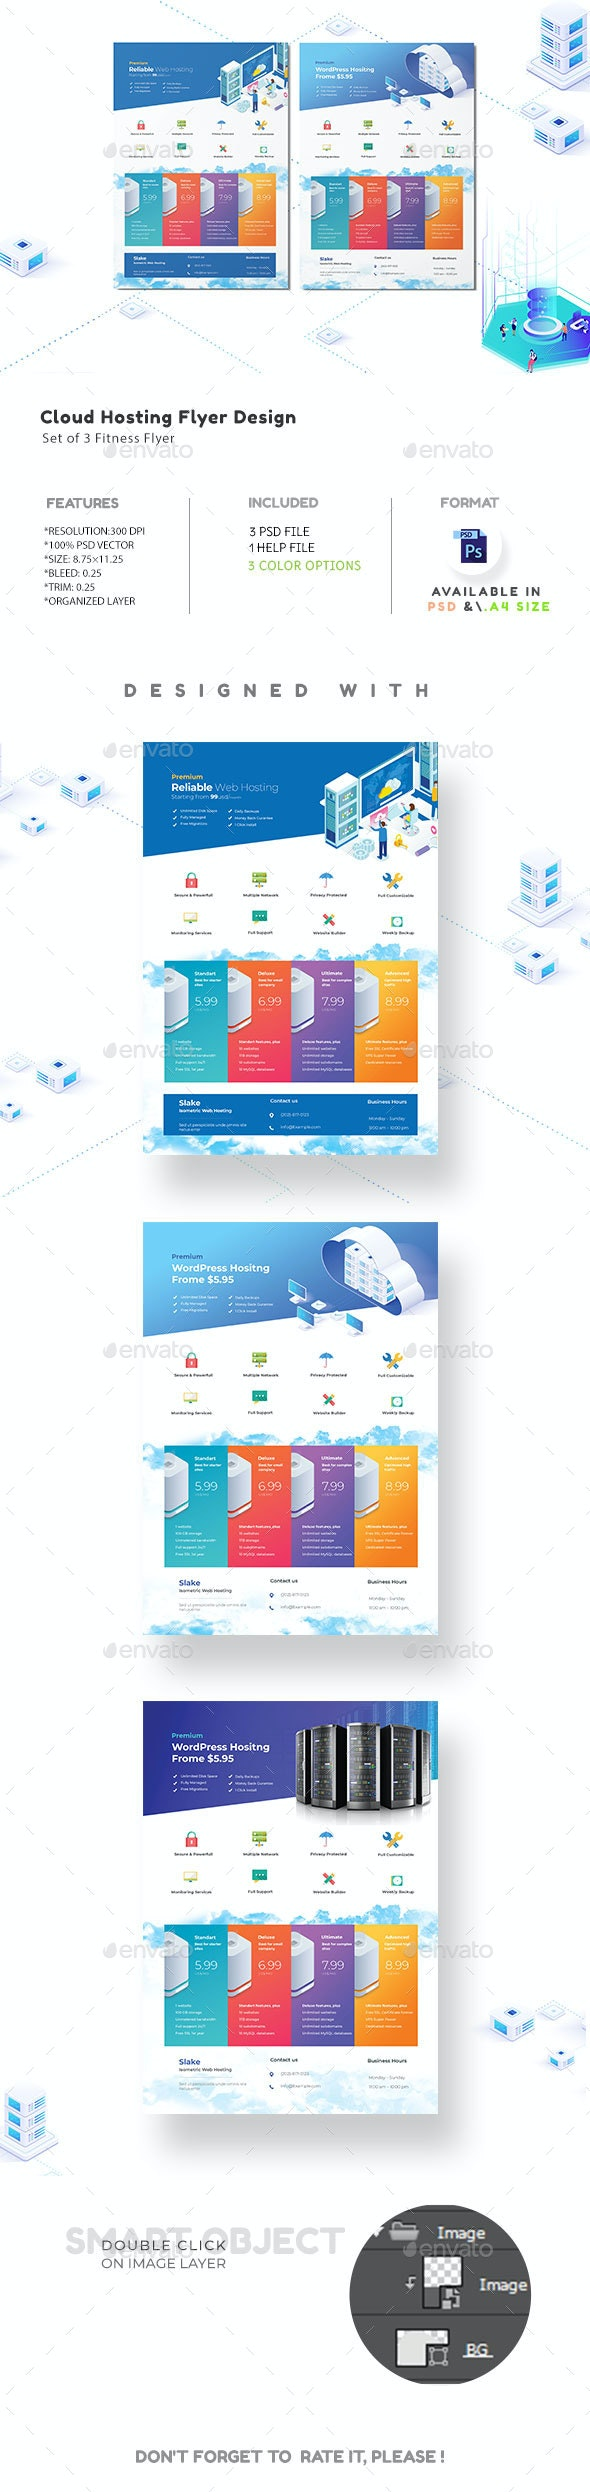 Cloud Hosting Flyer - Flyers Print Templates